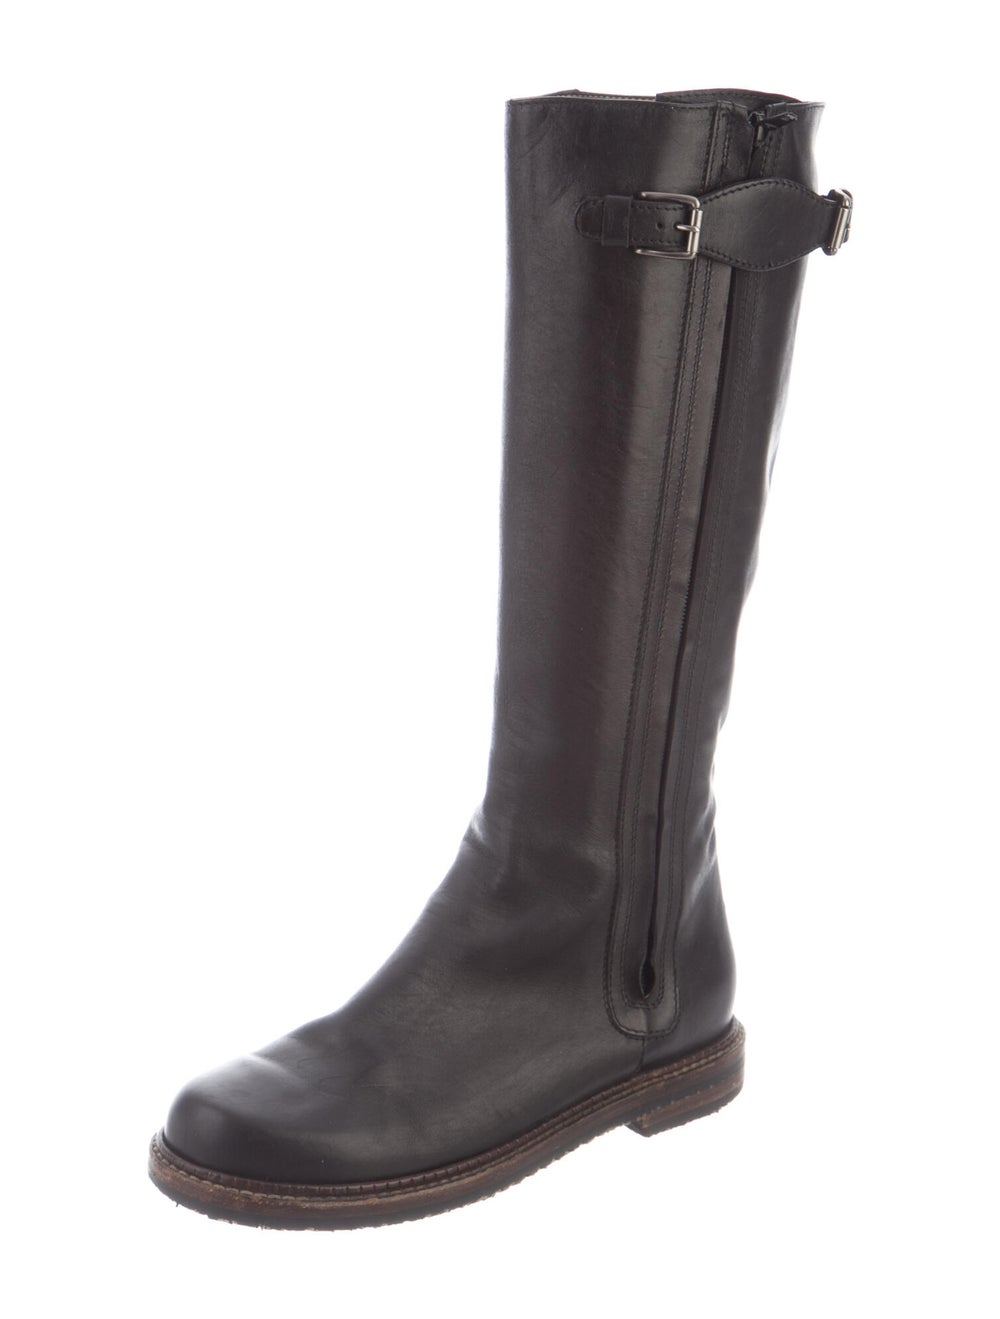 Marni Leather Riding Boots Black - image 2